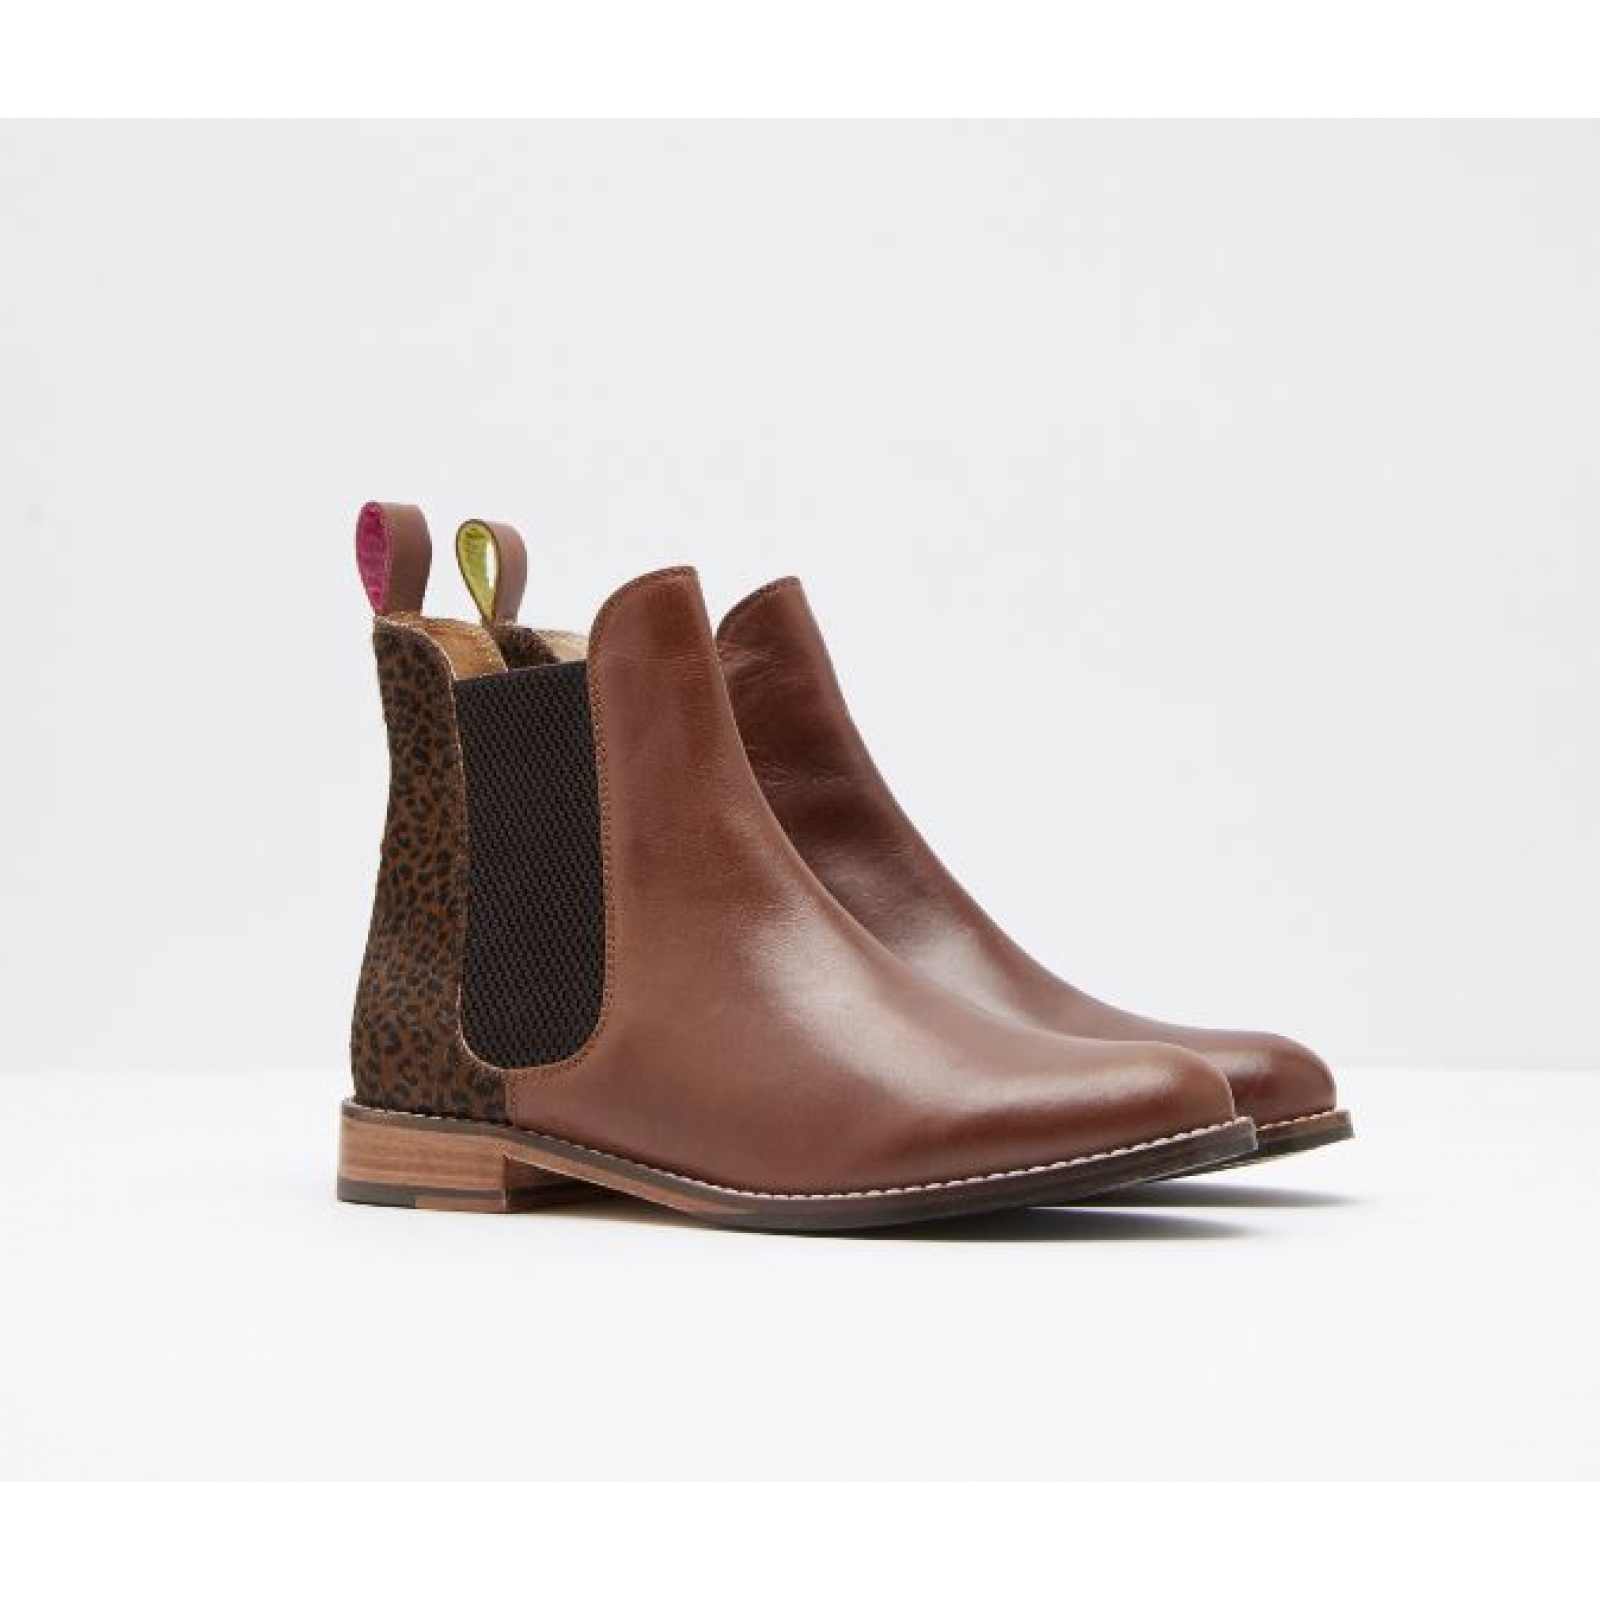 Joules-Westbourne-Premium-Leather-Chelsea-Boot-ALL-COLOURS miniature 17